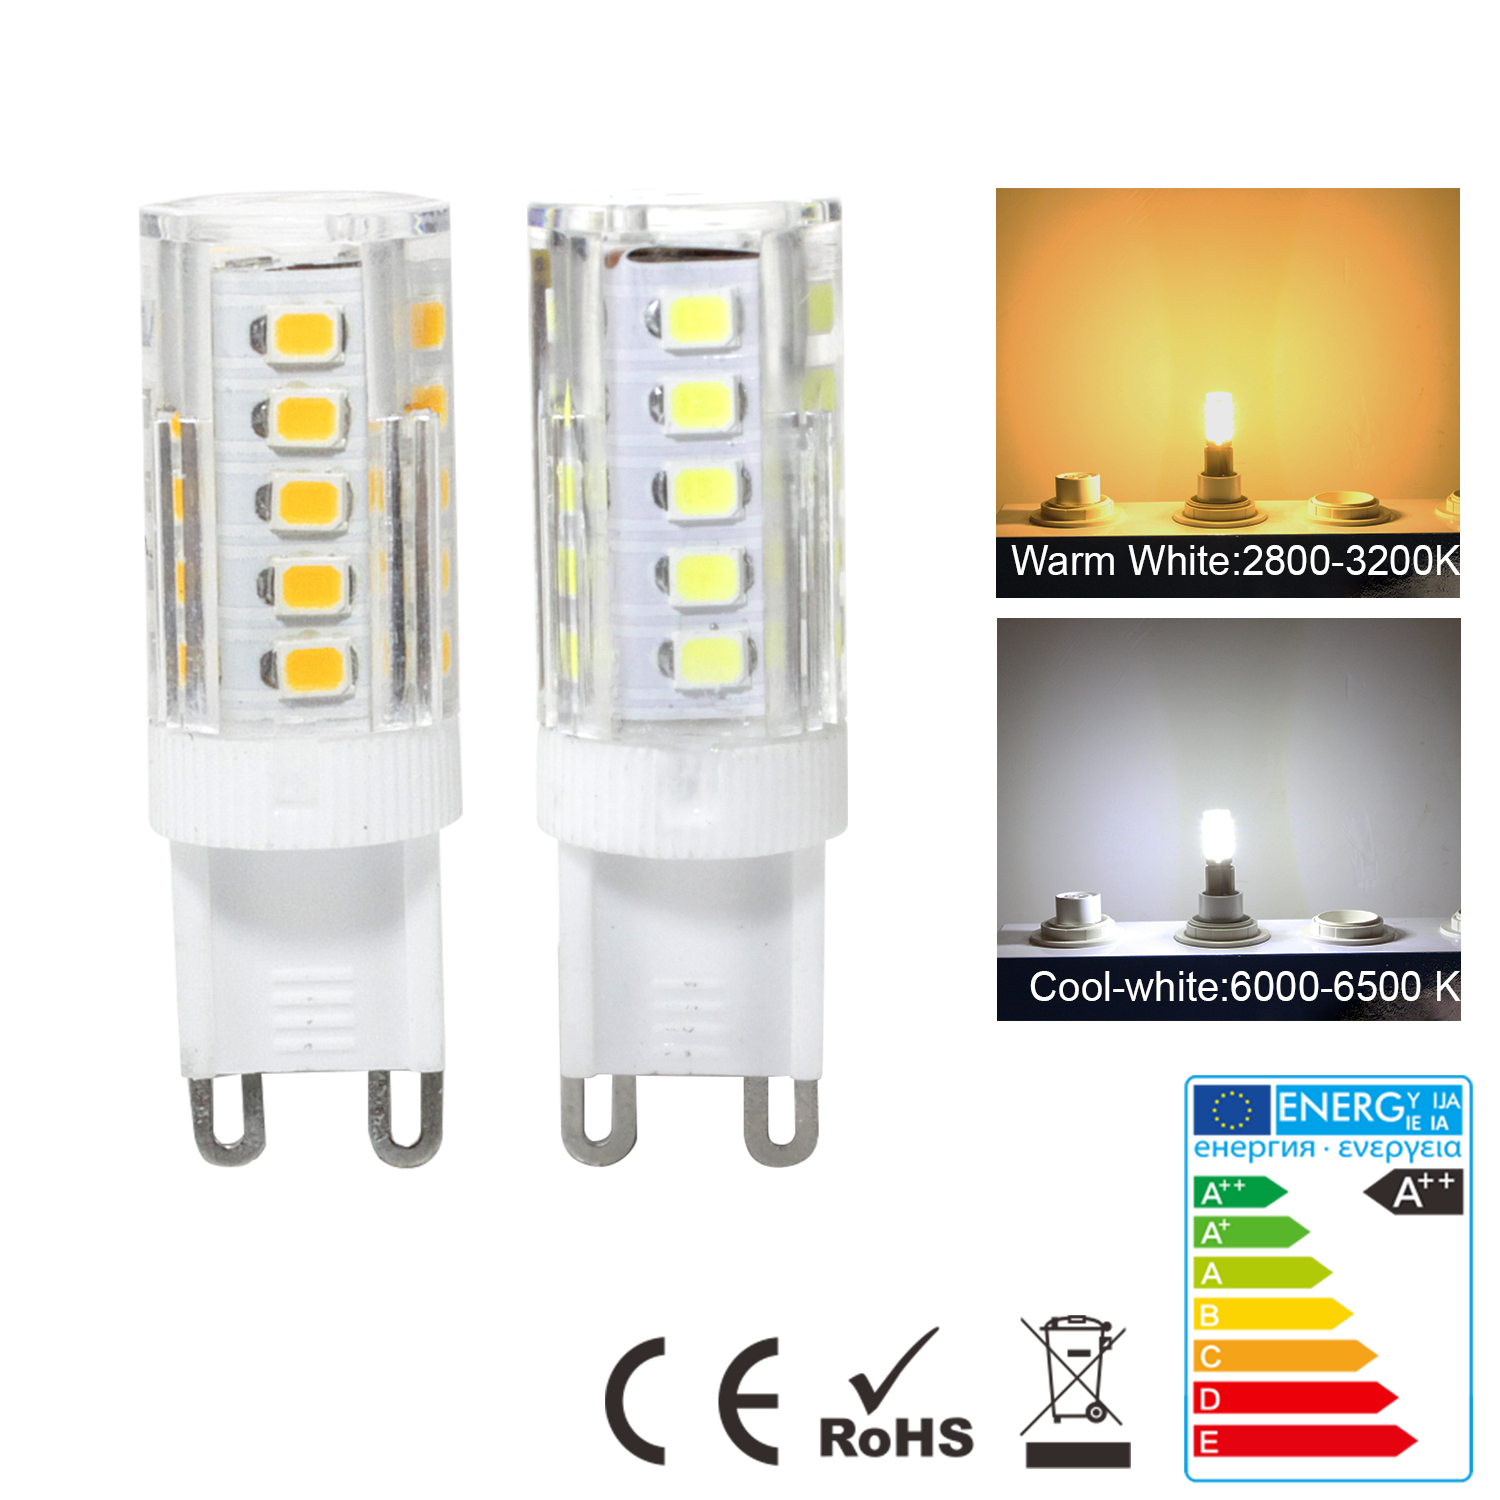 E14-G9-5W-SMD-LED-Ampoule-Mais-Lampe-Capsule-Blanc-Chaud-Froid-Replacer-Halogene